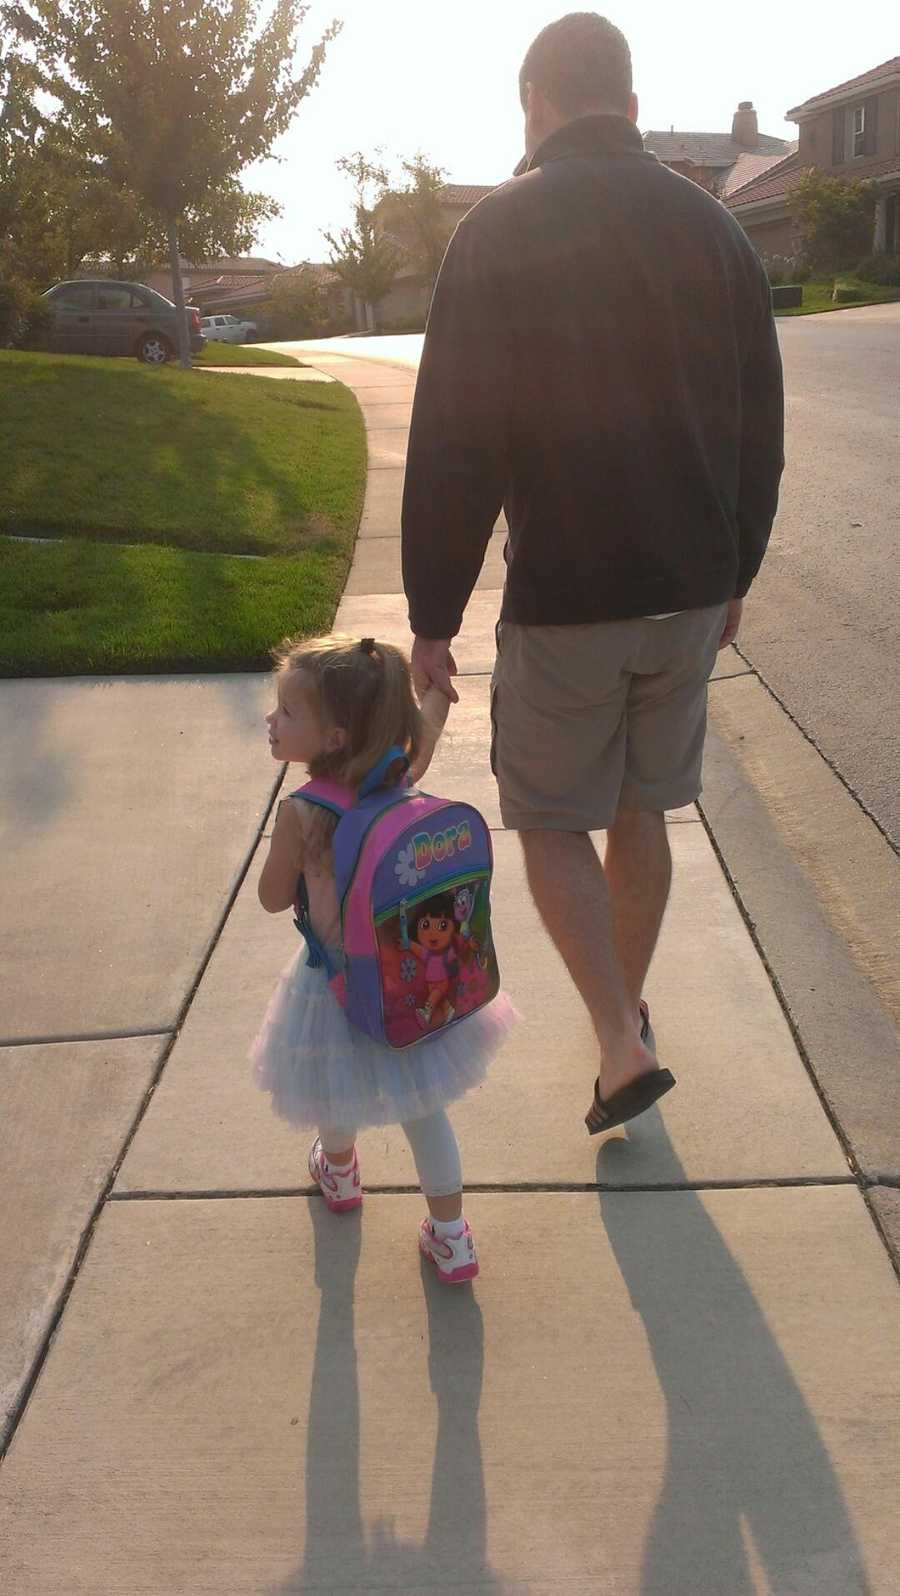 8. My favorite walk is 10 houses down, with my daughter to preschool.